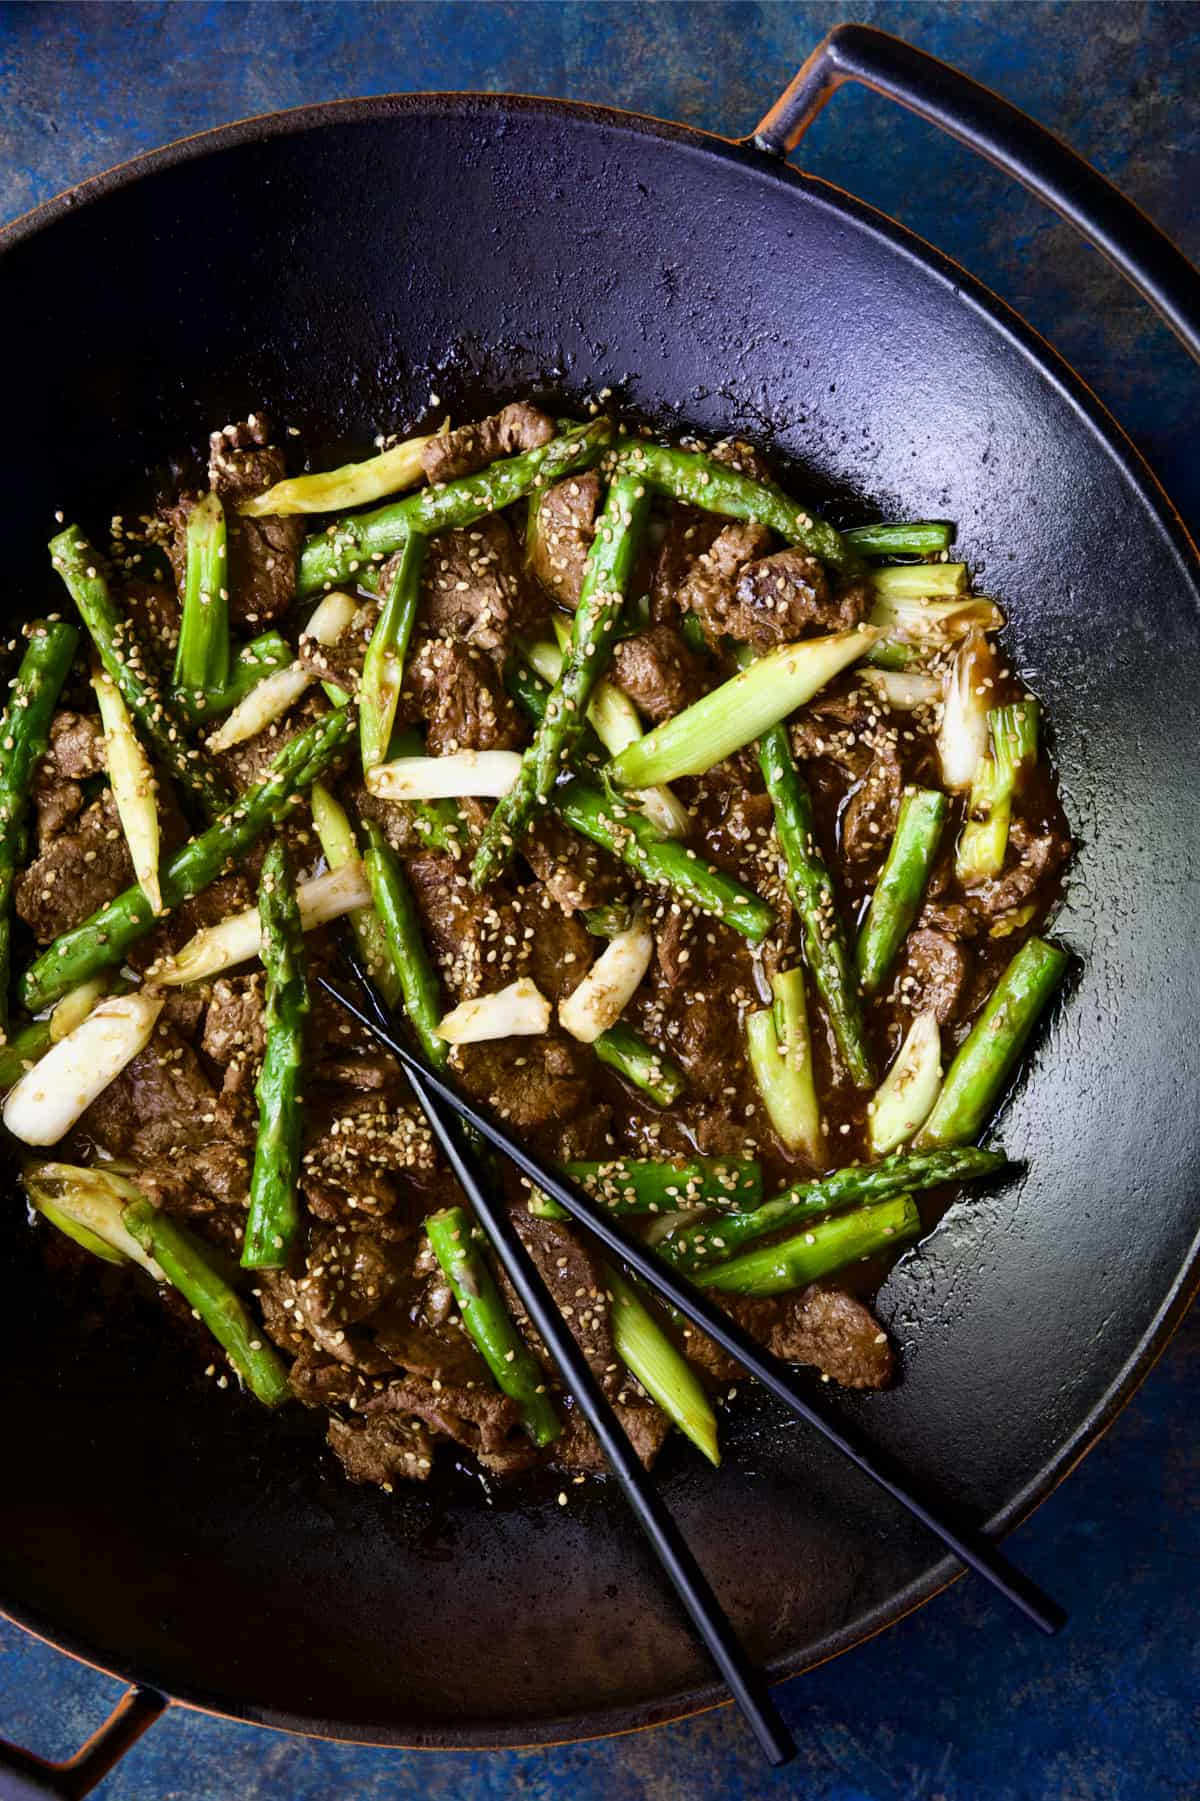 Sesame Beef and Asparagus Stir-Fry in cast iron wok.